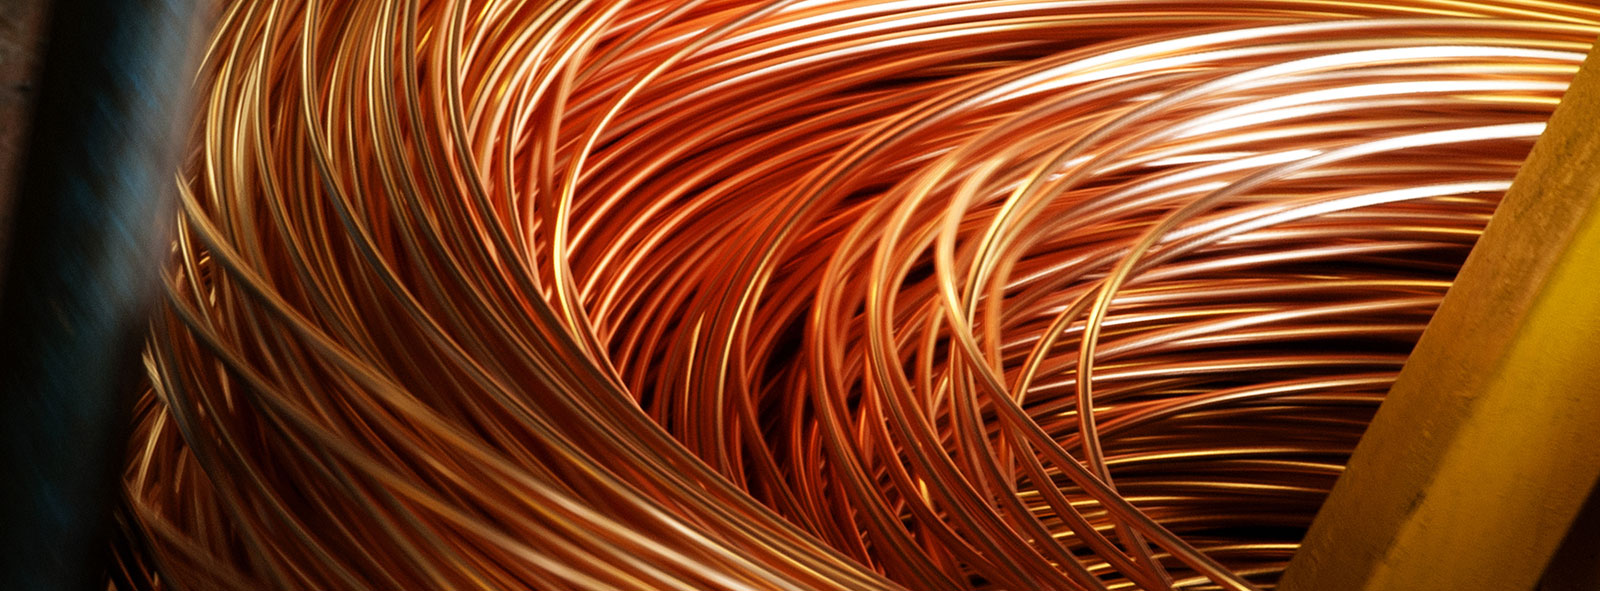 copper-rod-manufacturers-india